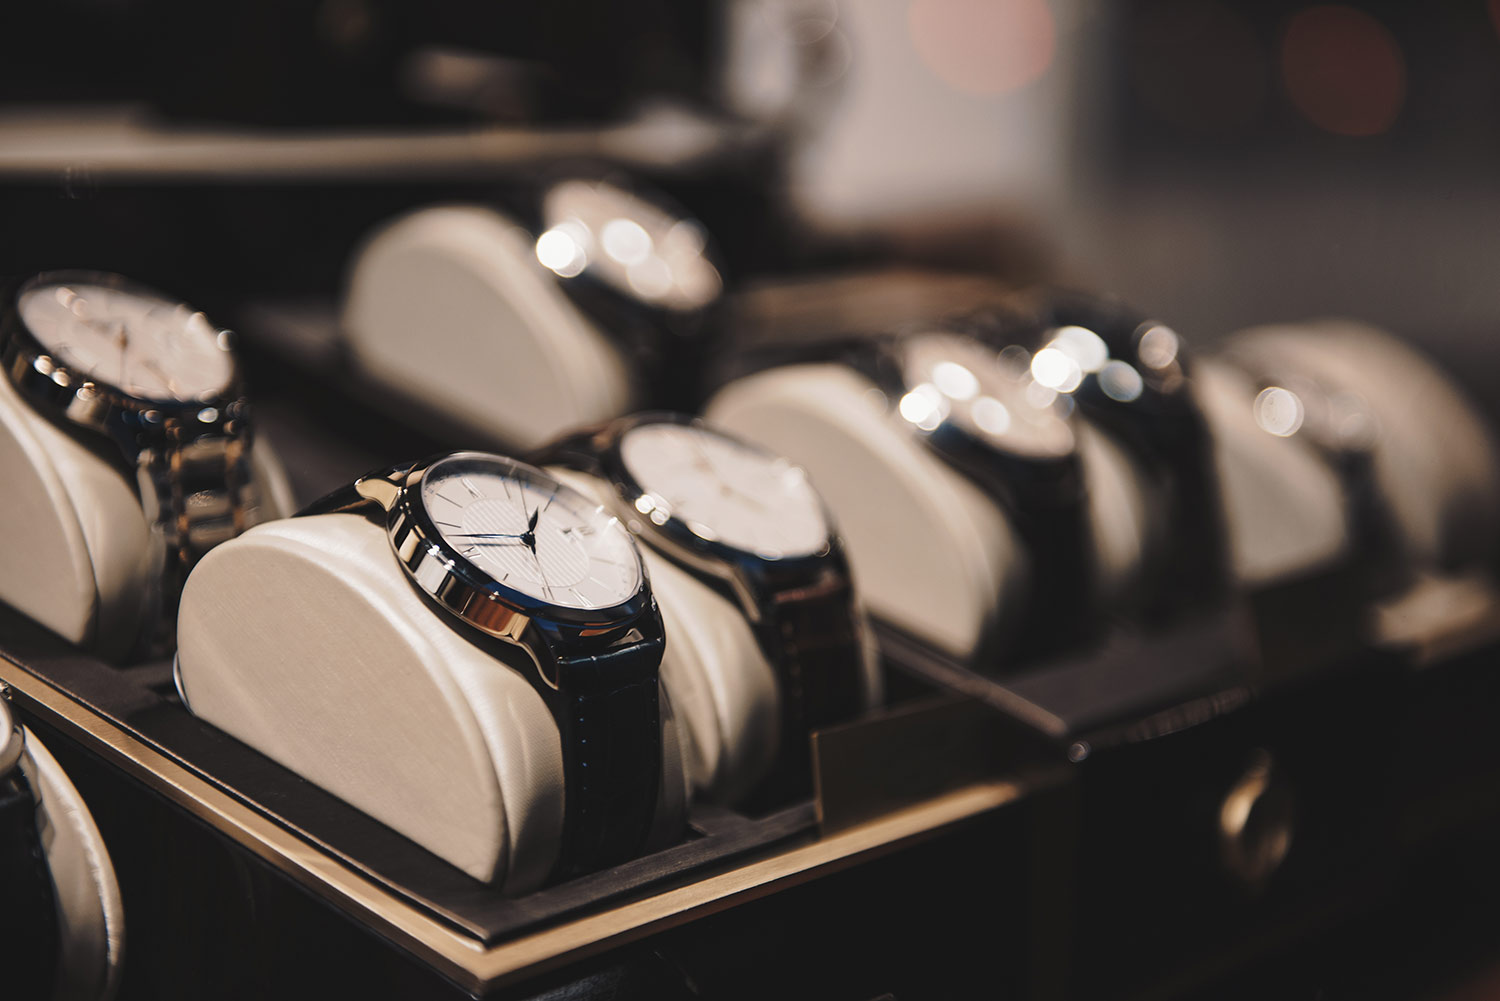 Buying-a-luxury-watch